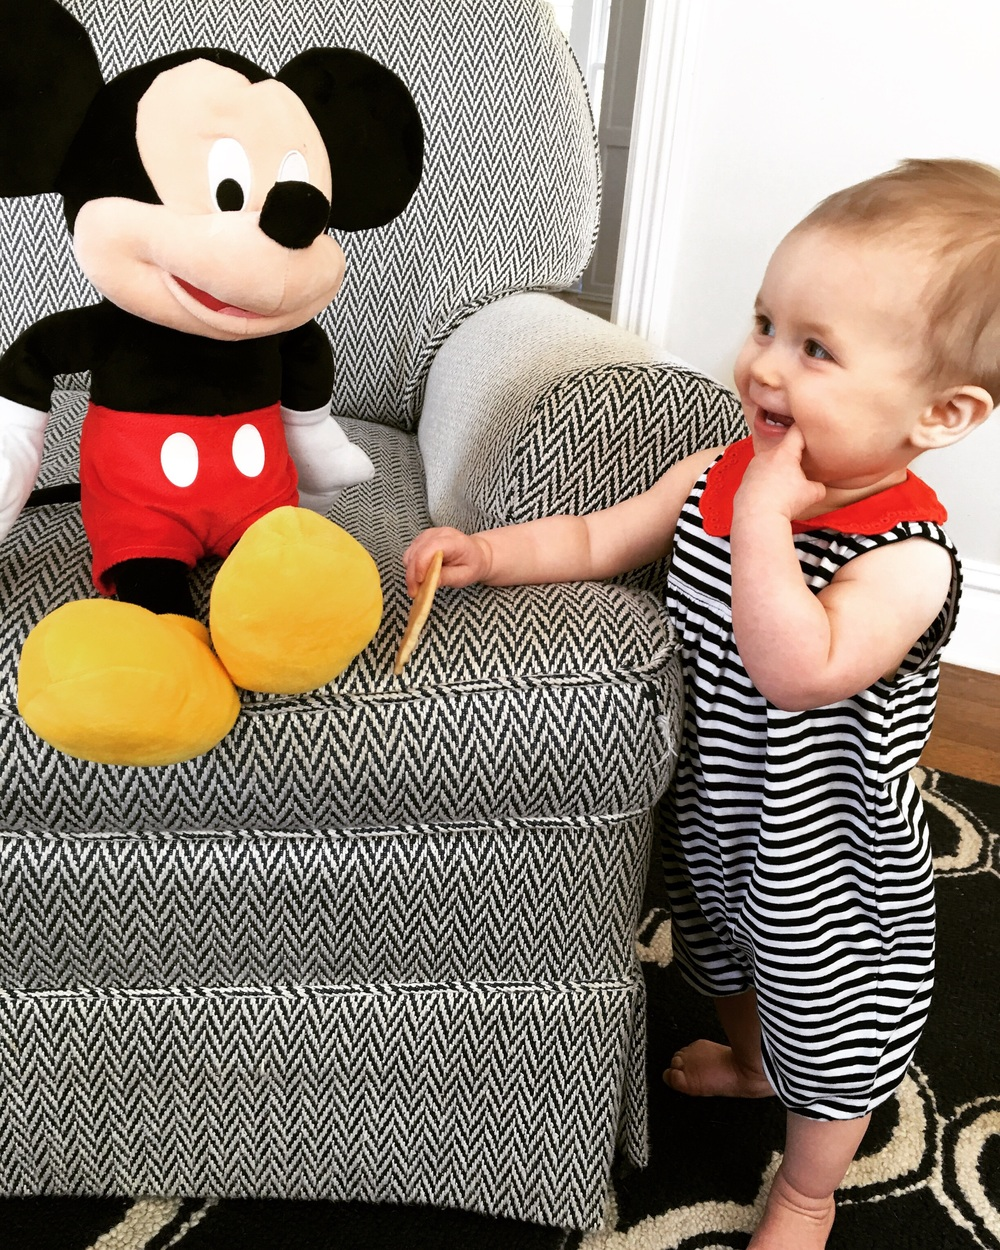 This little eleven month old + her pal, Mickey